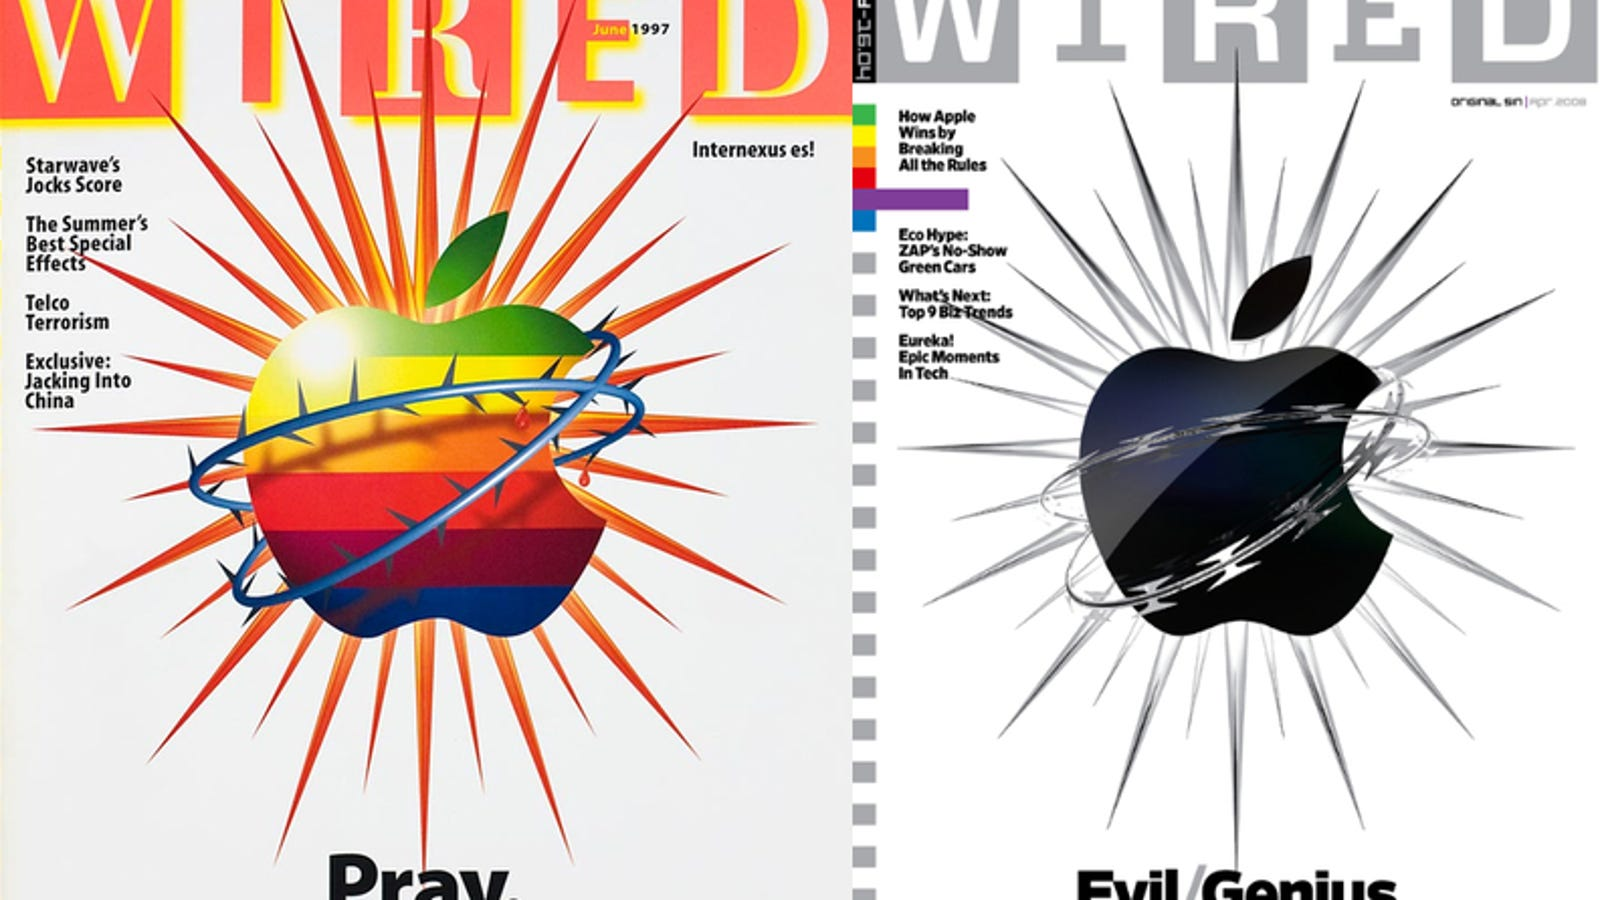 Wired on Apple: \